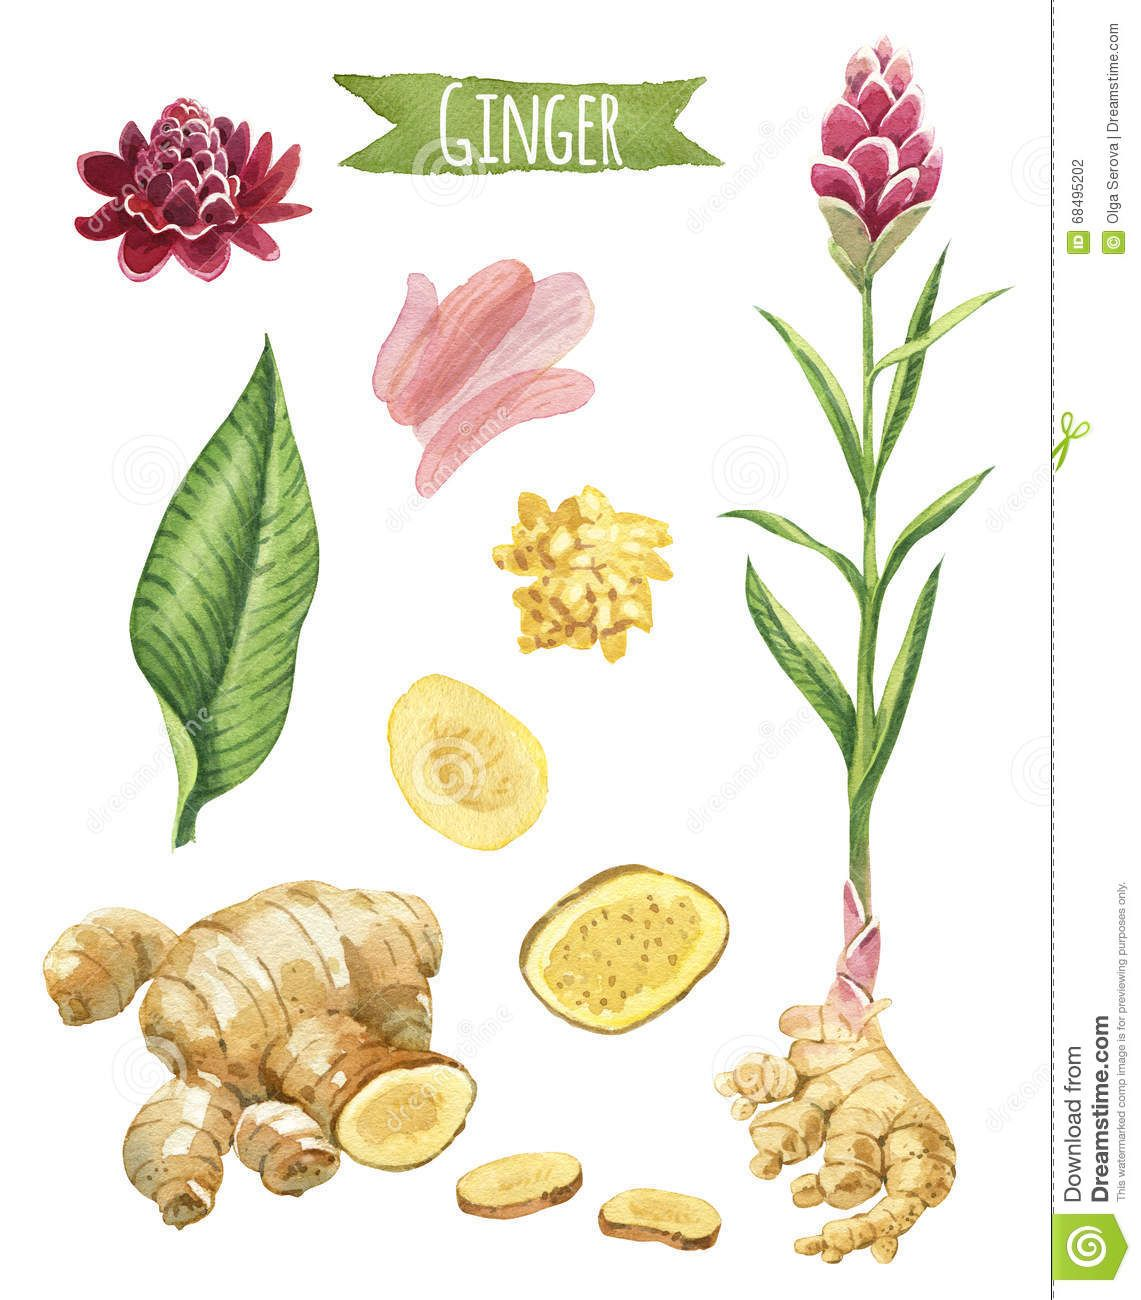 Illustration About Ginger Hand Painted Watercolor Set Clipping Paths Included Illustration Of Leaf B In 2020 Herbs Illustration Watercolor Plants Botanical Drawings